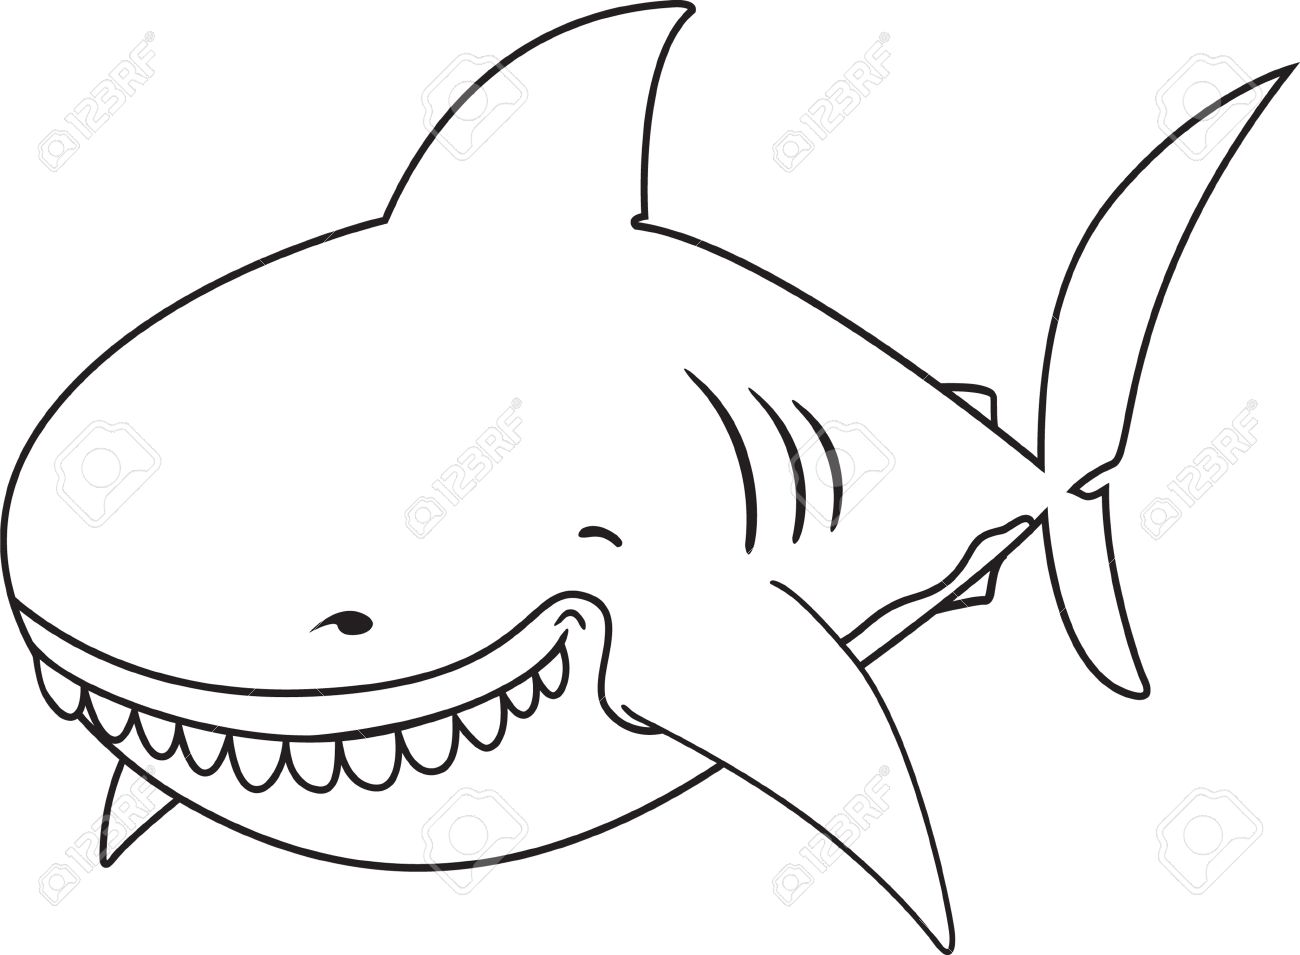 - Cute Funny Looking Great White Shark Coloring Book Royalty Free